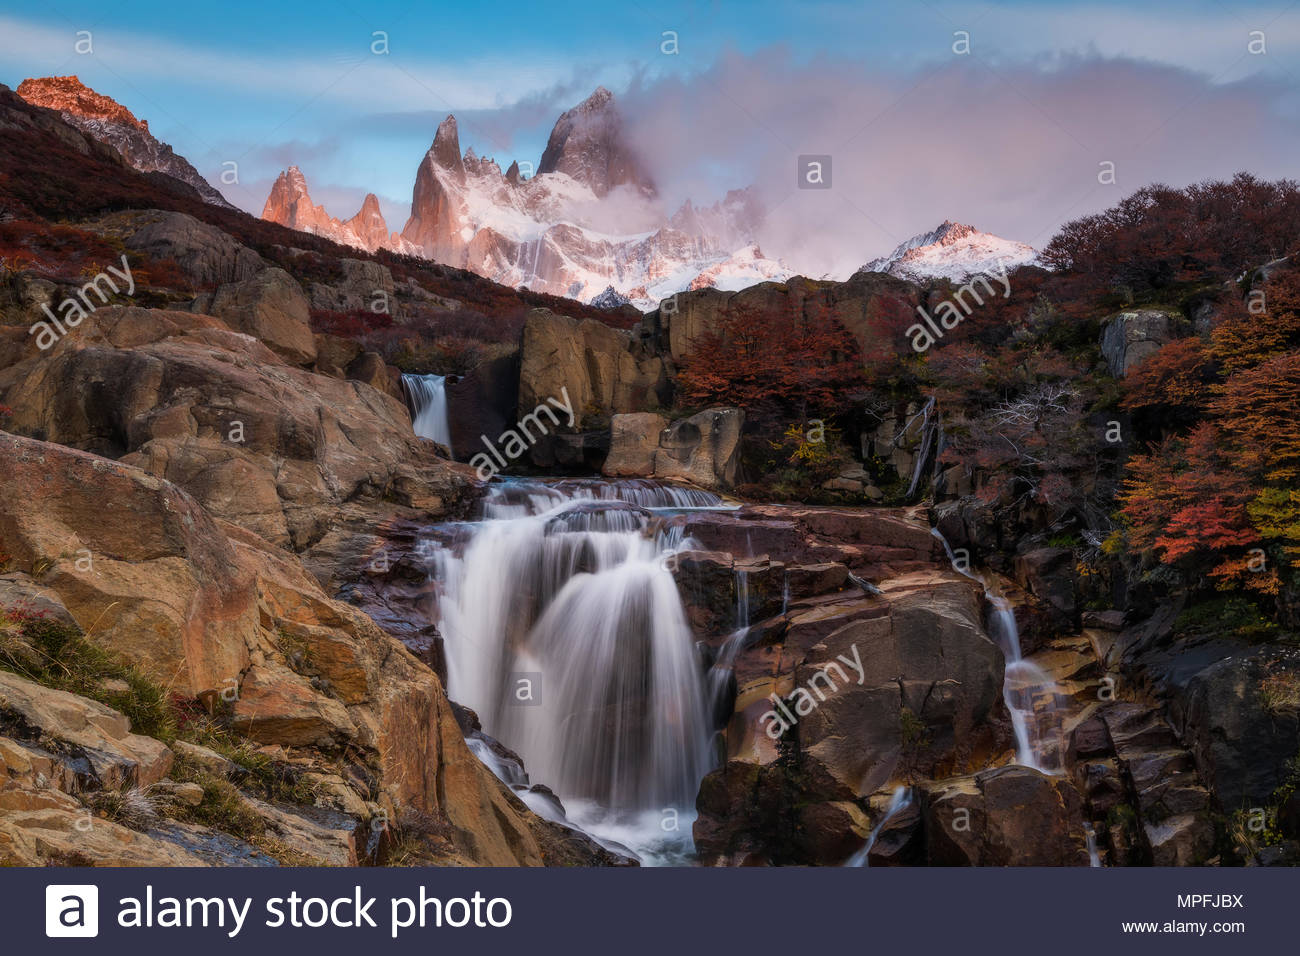 Beautiful view with waterfall and Fitz Roy mountain. Patagonia, Argentina. - Stock Image